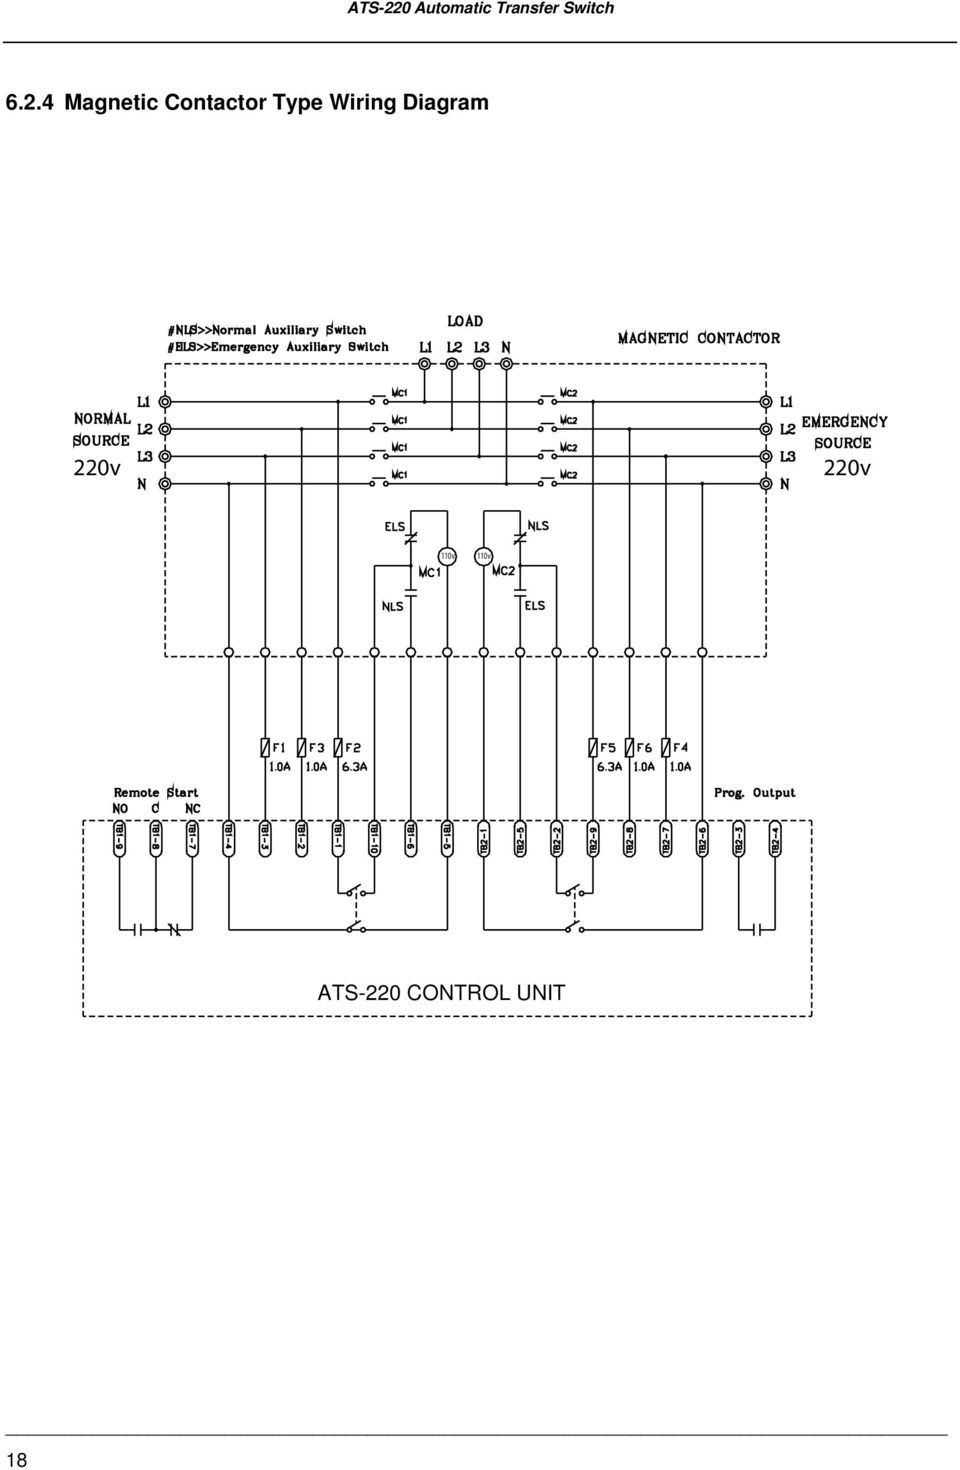 medium resolution of 19 6 3 3p 380v connecting wire diagram mccb type wiring diagram motor normal phase n emergency phase n ats 220 control unit 19